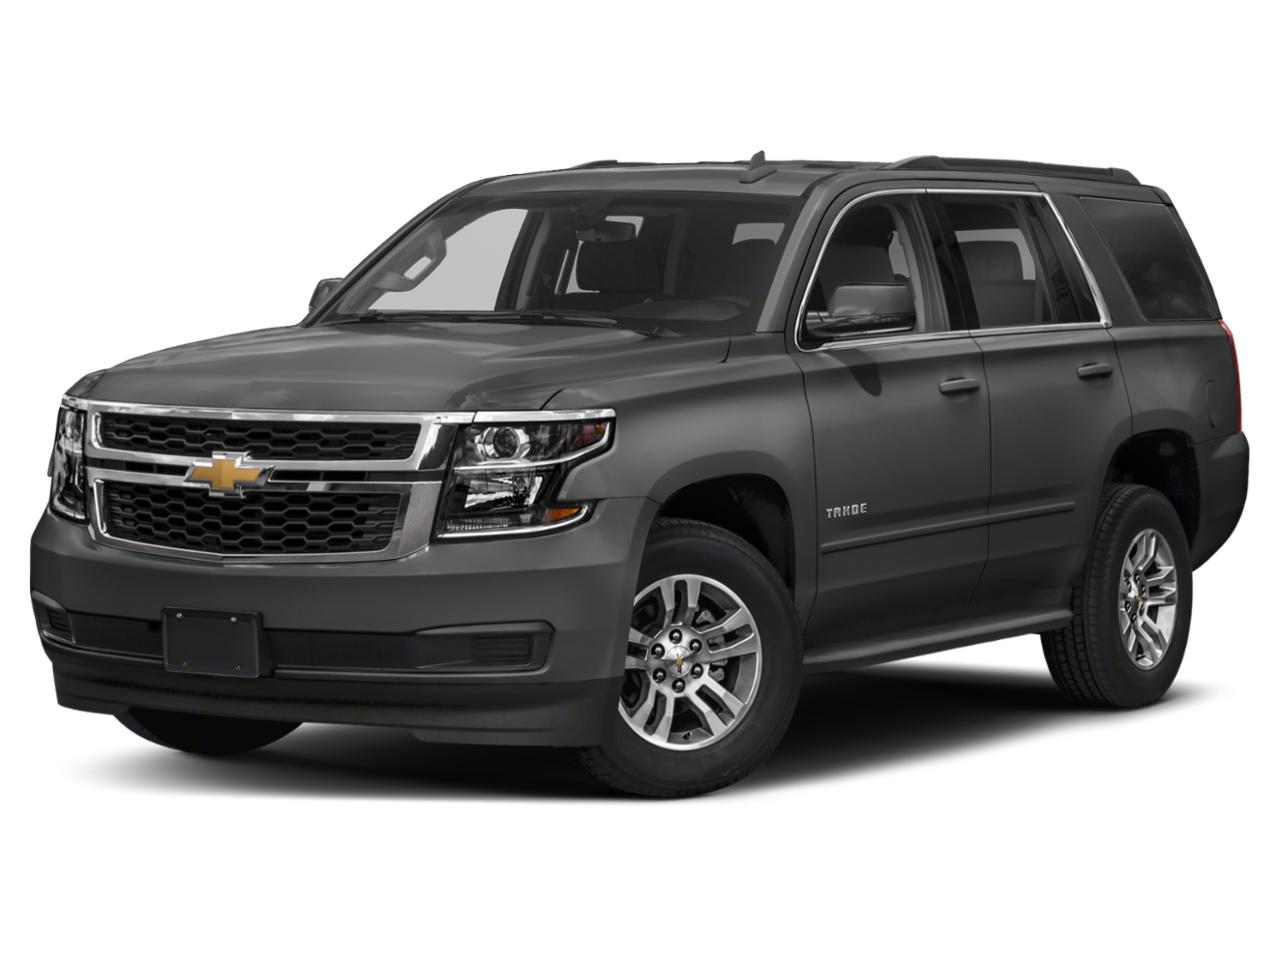 Used 2019 Chevrolet Tahoe For Sale At Hatcher Chevrolet Buick Gmc